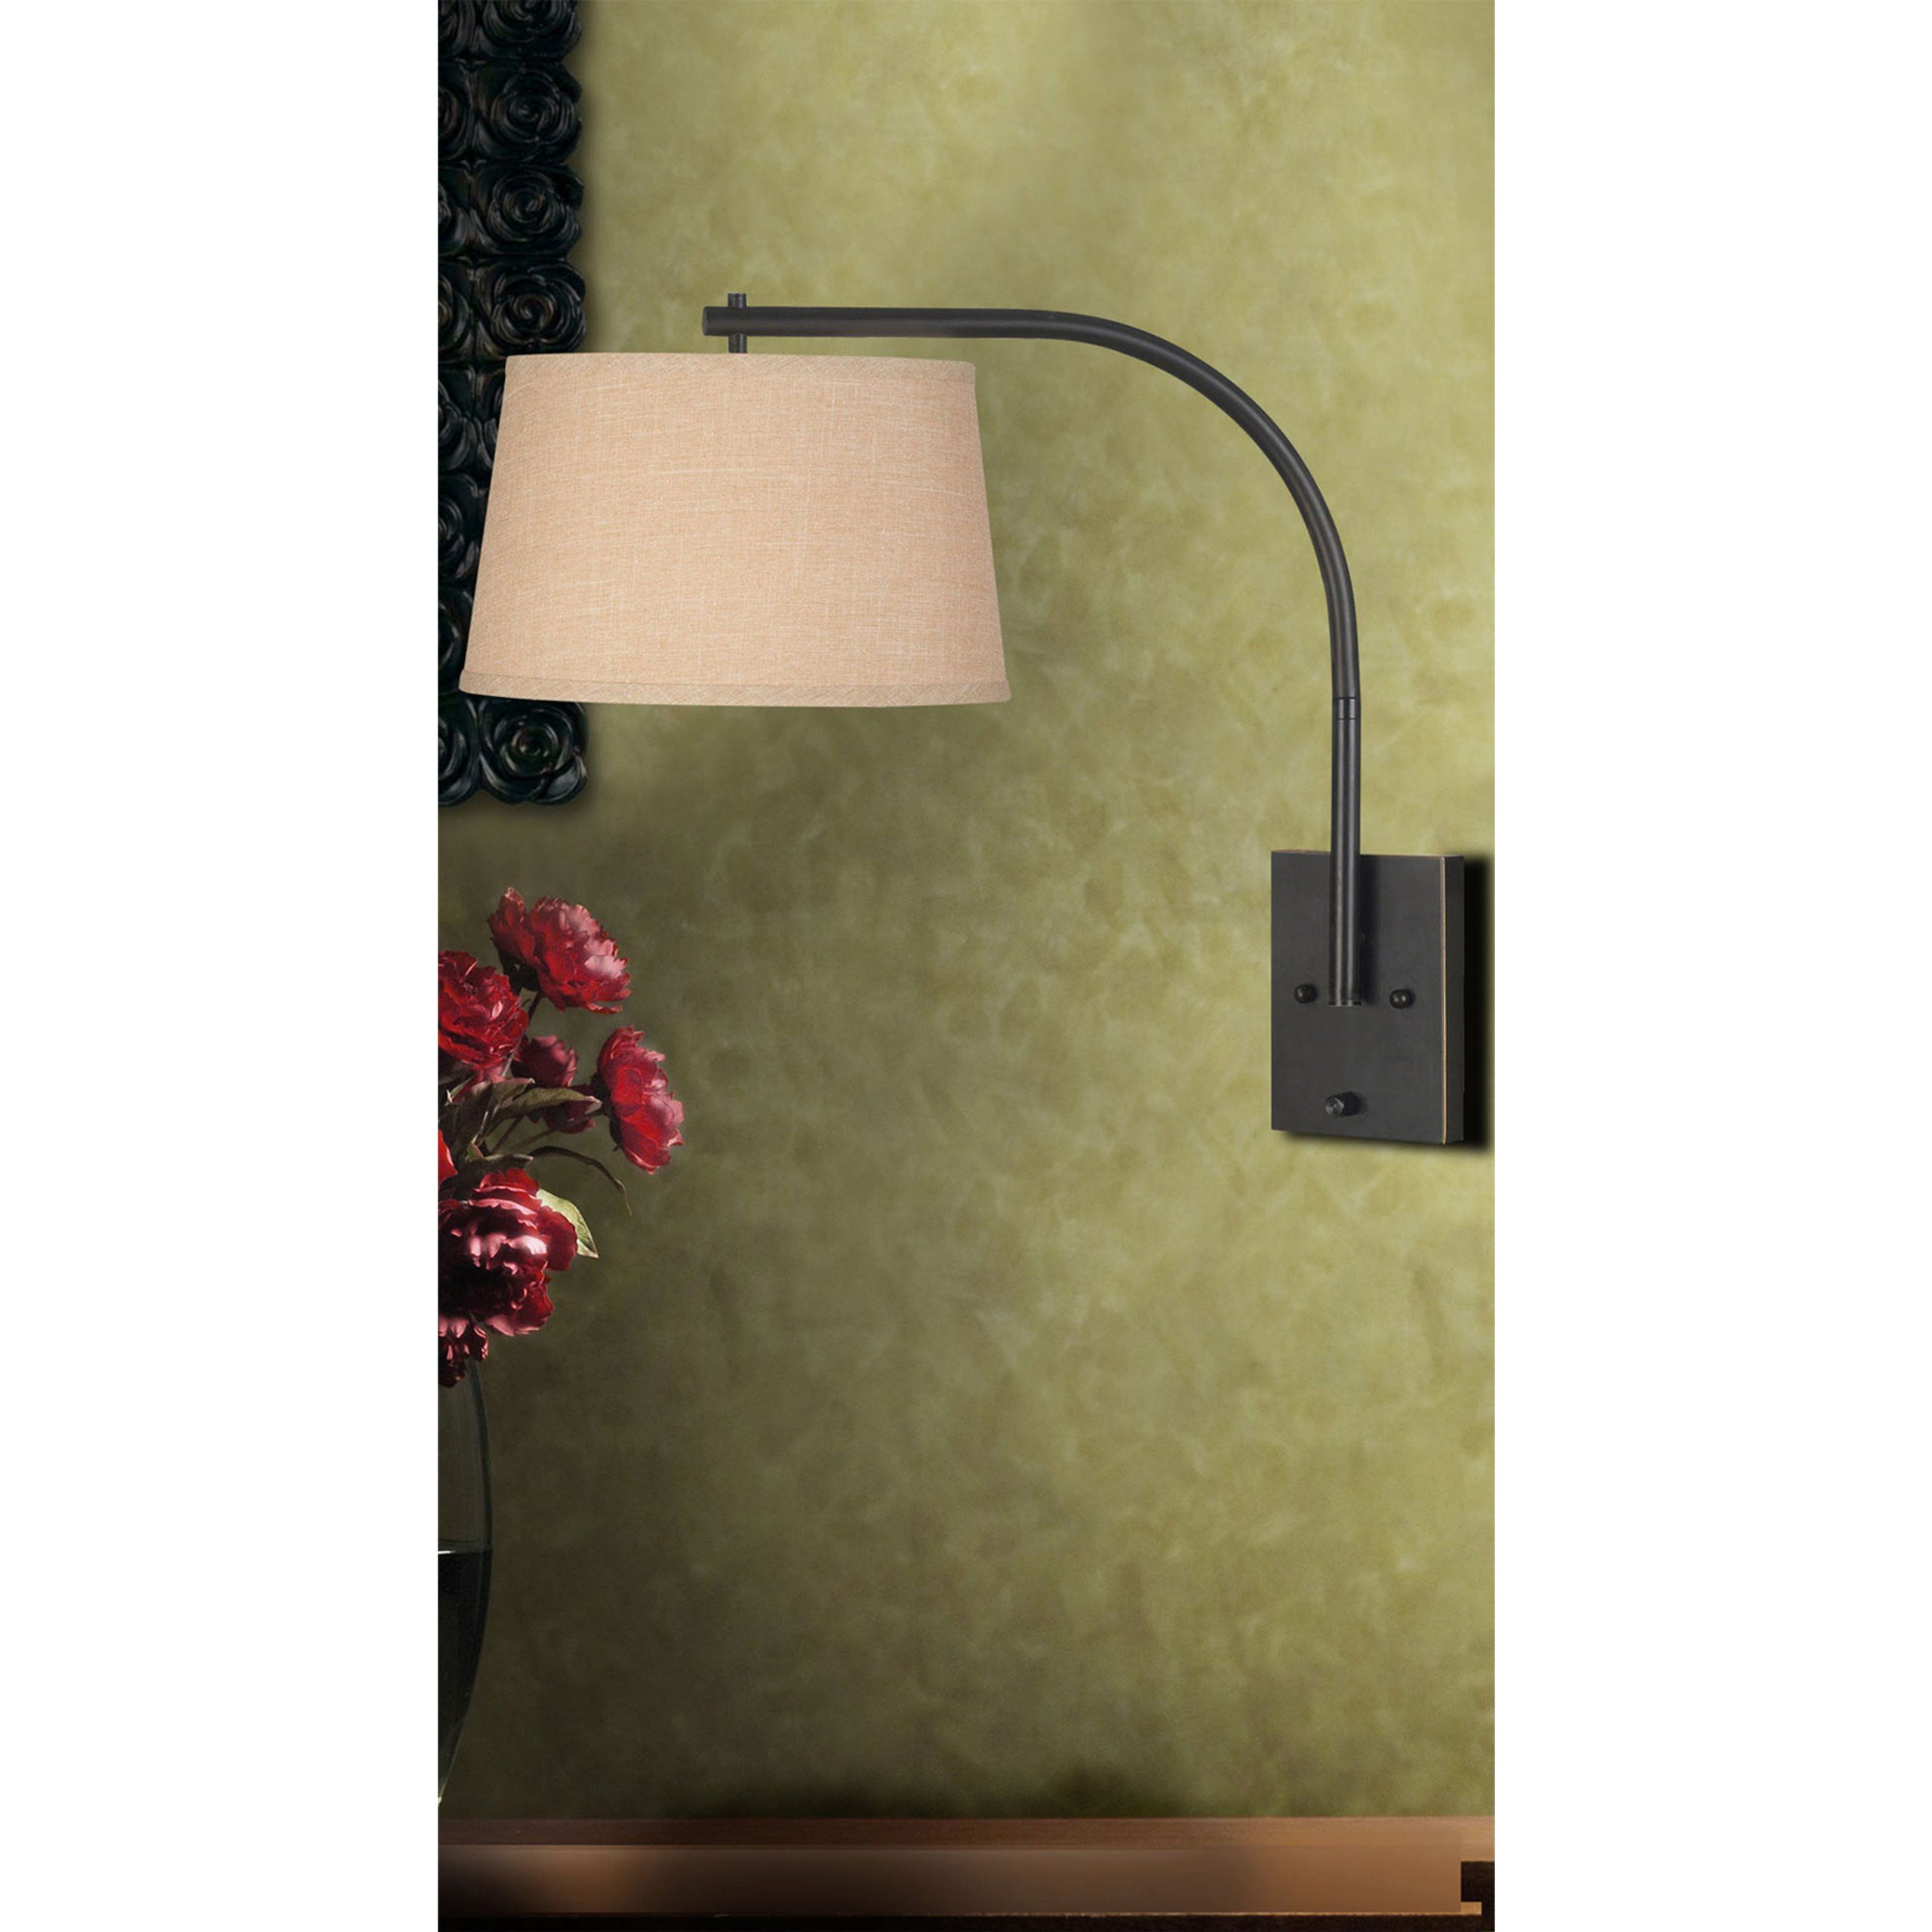 Kenroy home 20950orb sweep wall swing arm lamp oil rubbed bronze kenroy home 20950orb sweep wall swing arm lamp oil rubbed bronze table lamps aloadofball Image collections